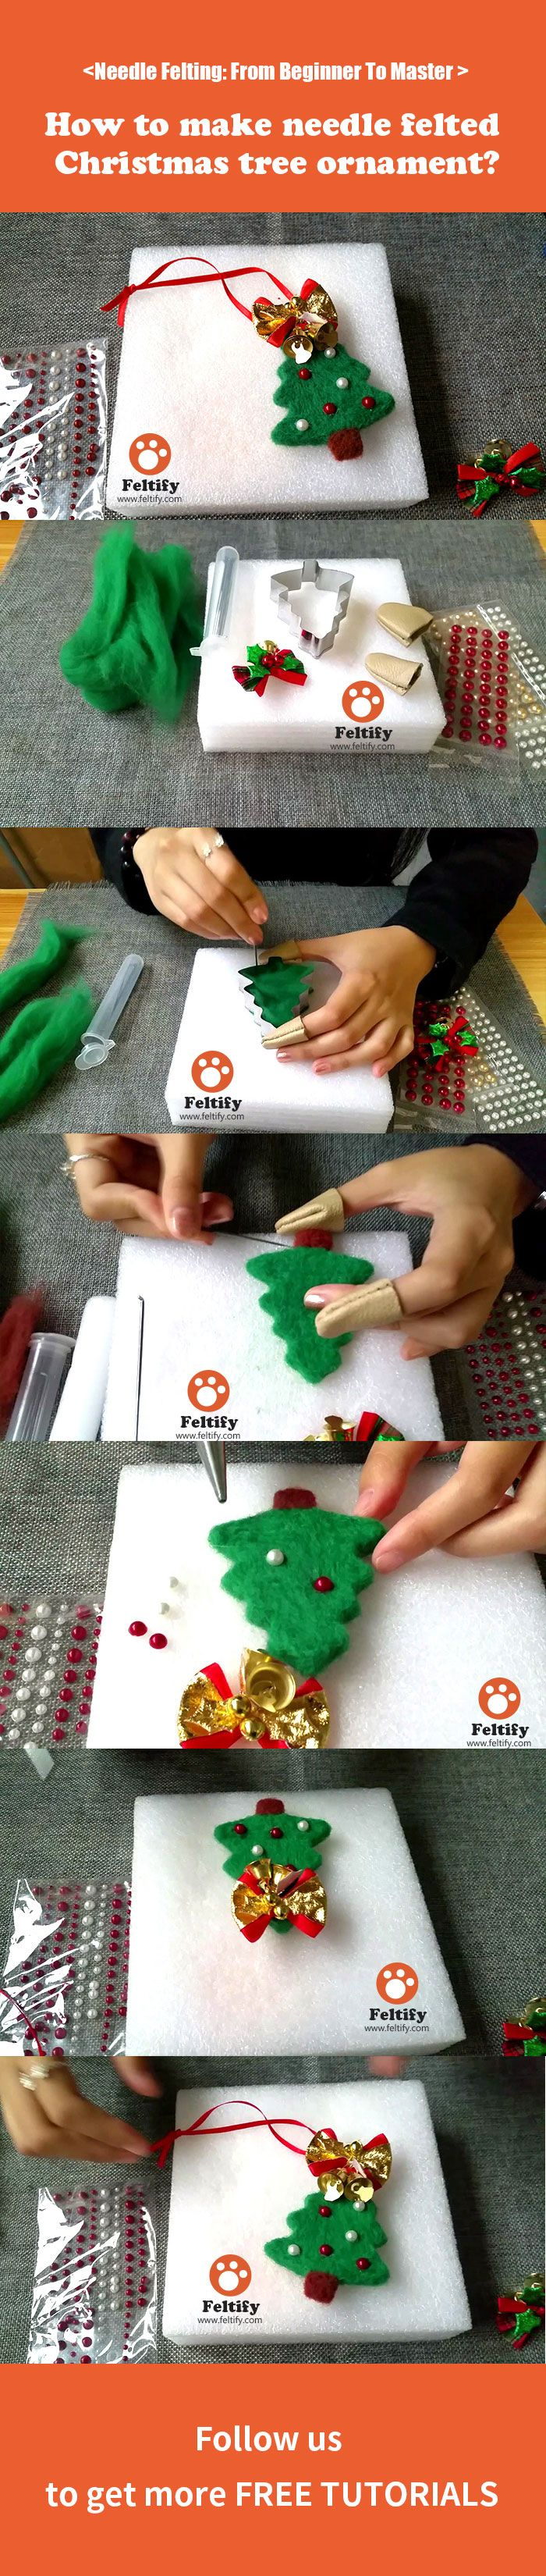 How to make needle felted Christmas tree ornament?